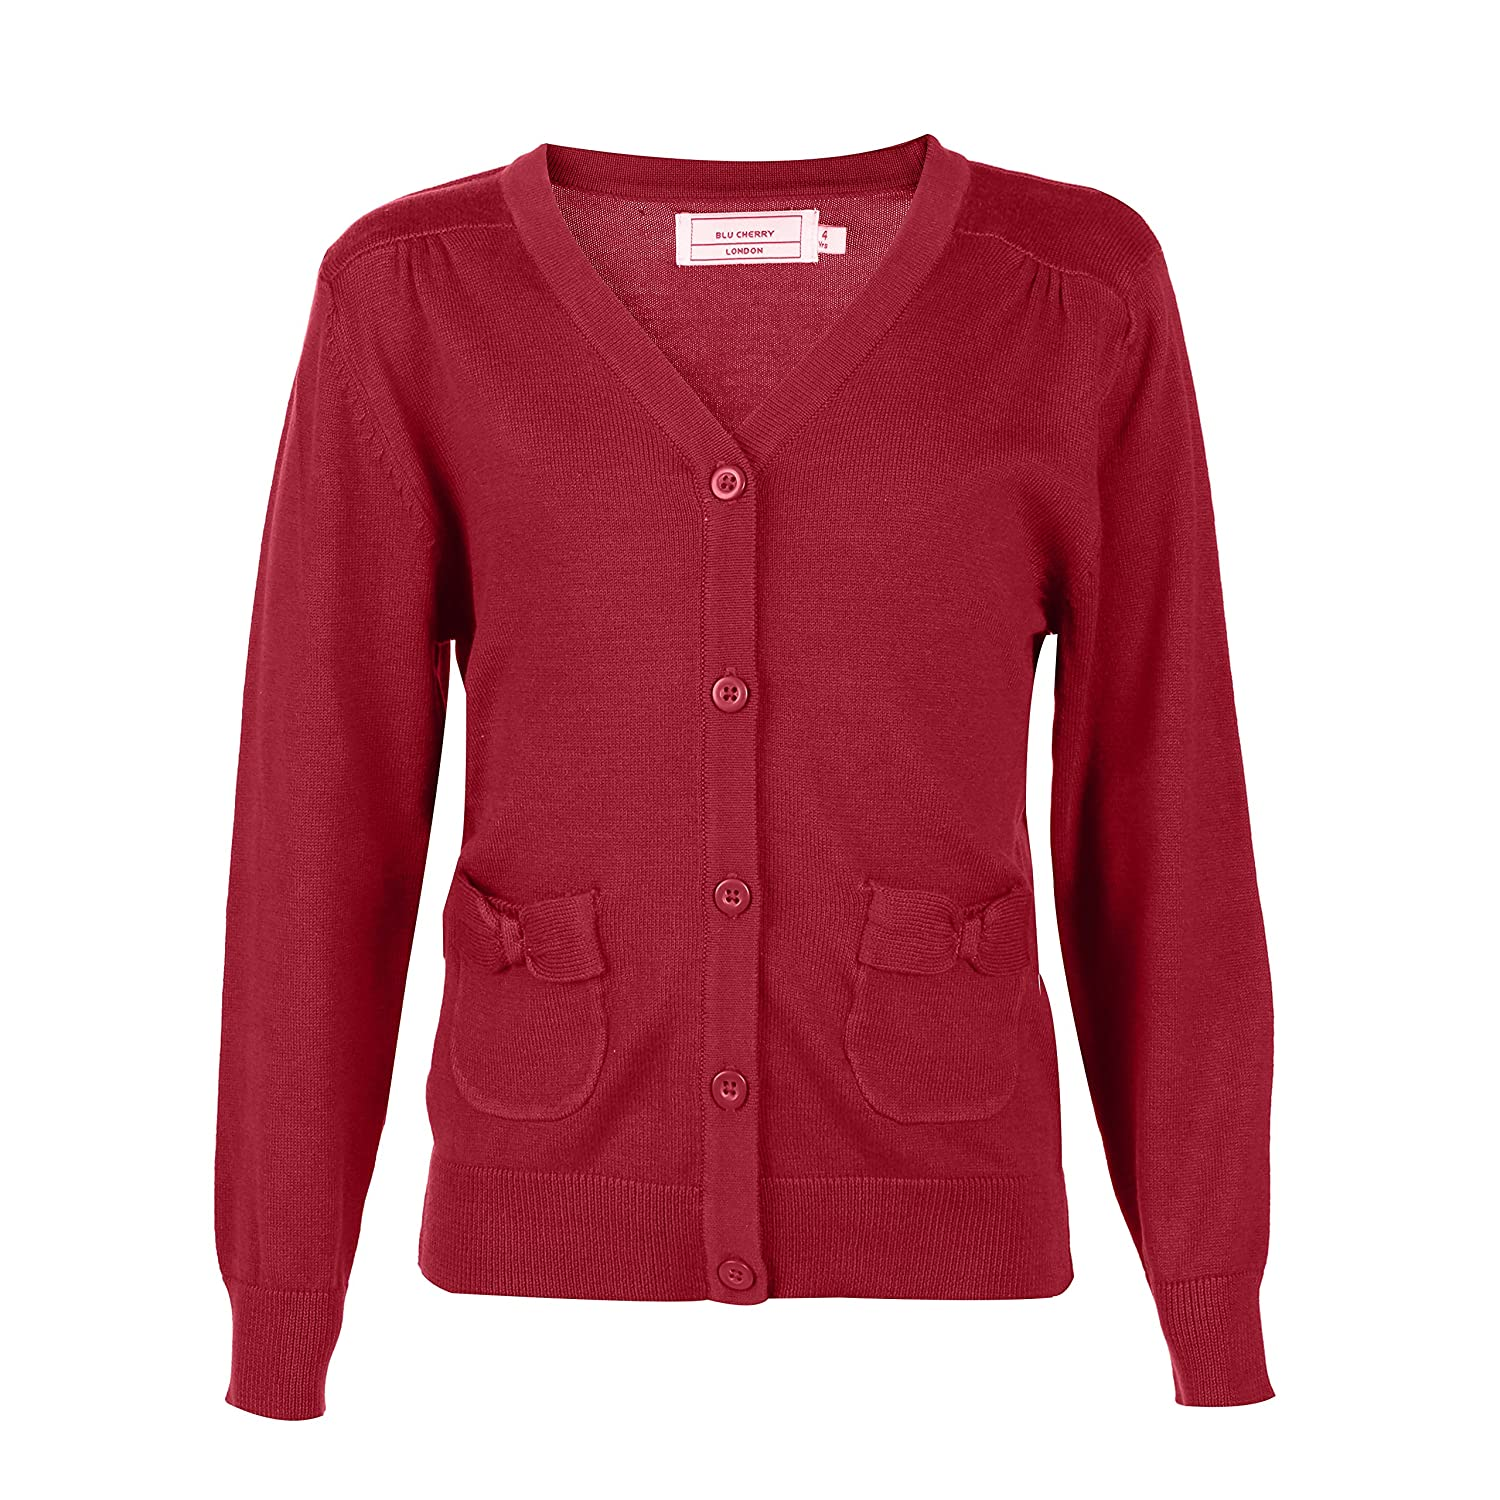 Blu Cherry Girls Cardigans with Pockets V-Neck School Uniforms Long Sleeve All Year Around